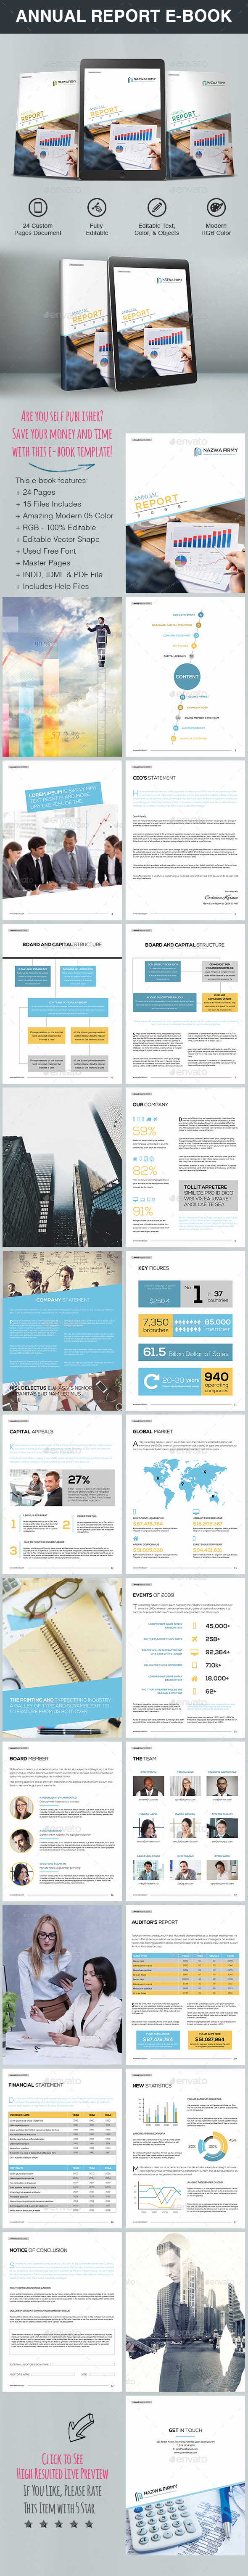 Annual Report E-Book Template - ePublishing